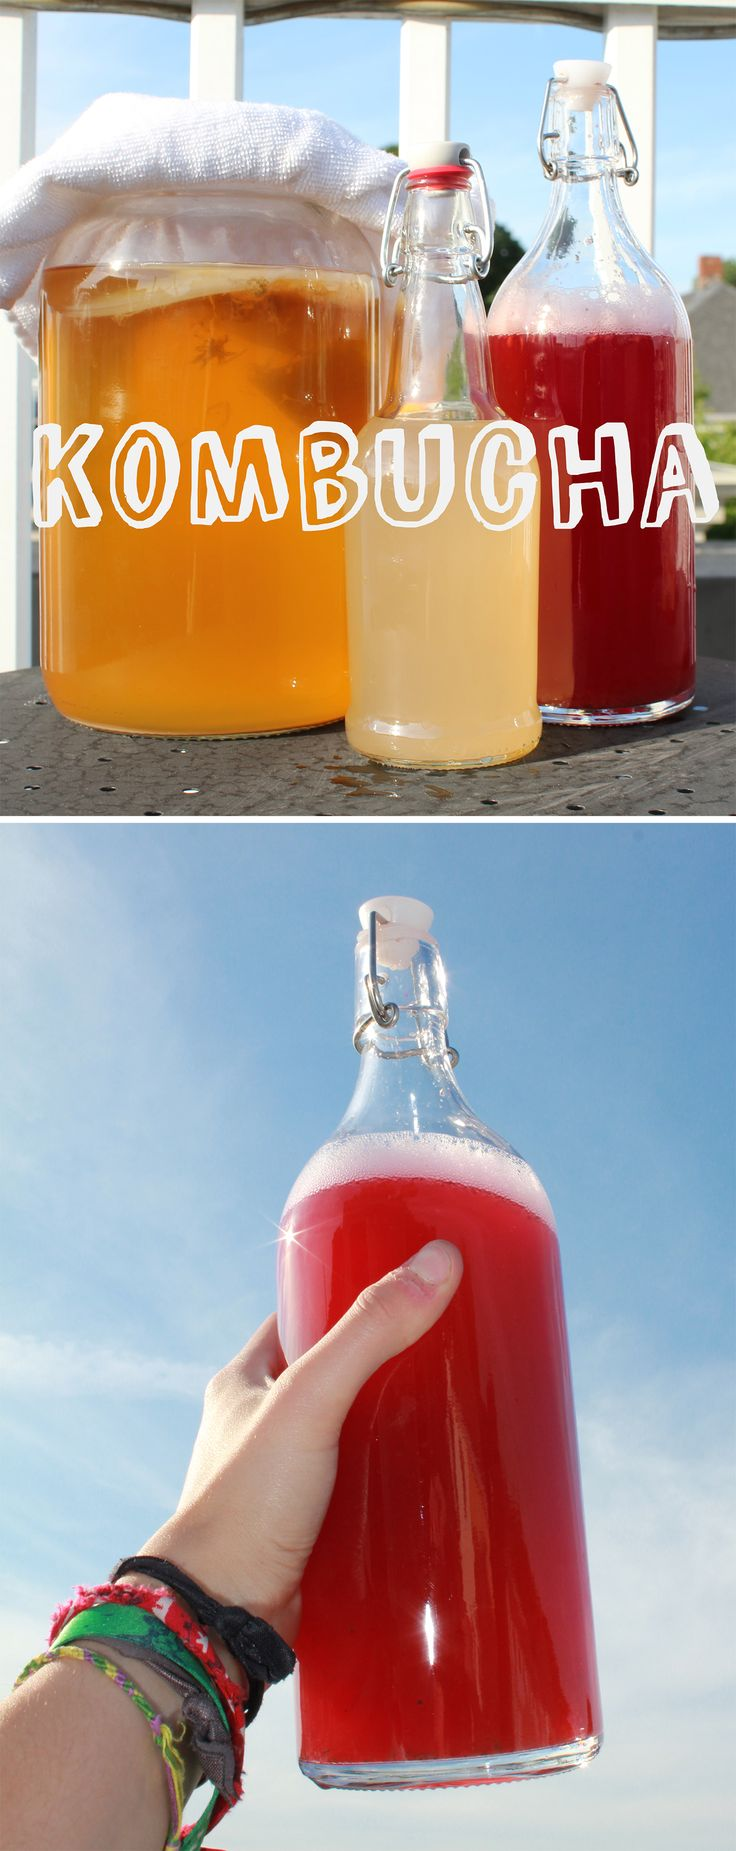 Kombucha is a fermented tea using a bacteria called a Scoby. It's a lot easier to make at home than you think.